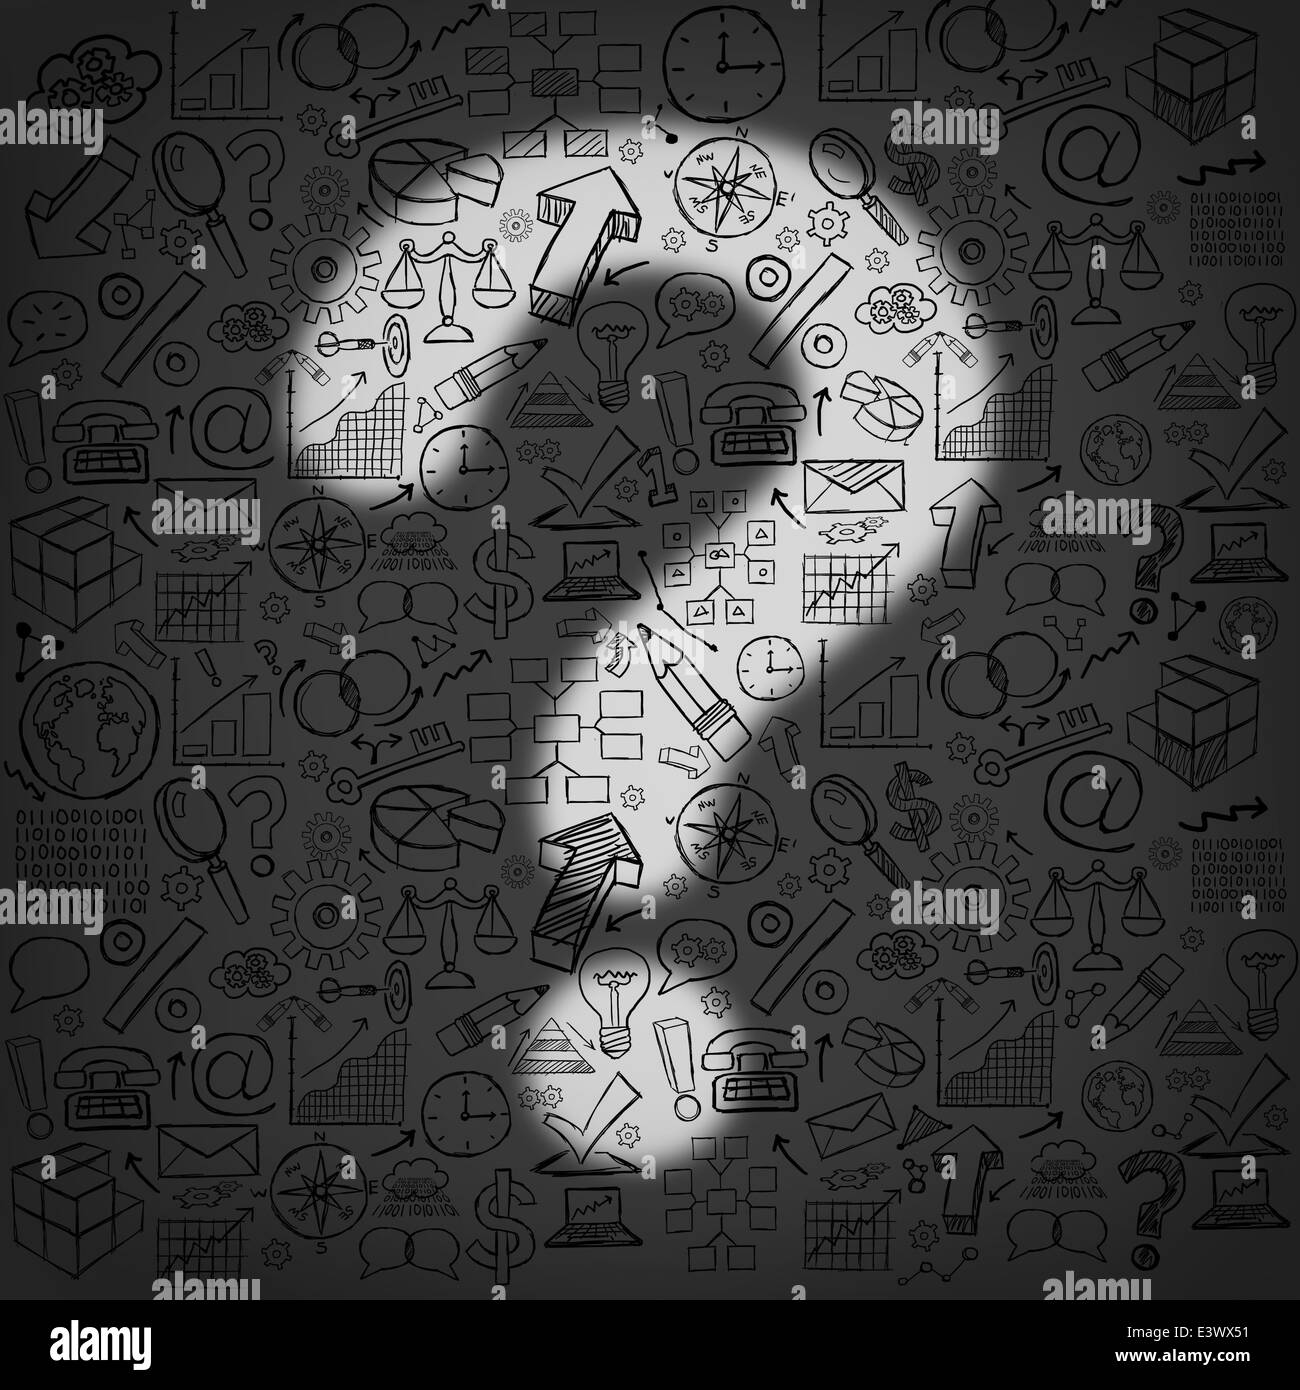 Business questions concept as a dark wall of financial icons and symbols with an illuminated light shaped as a question - Stock Image